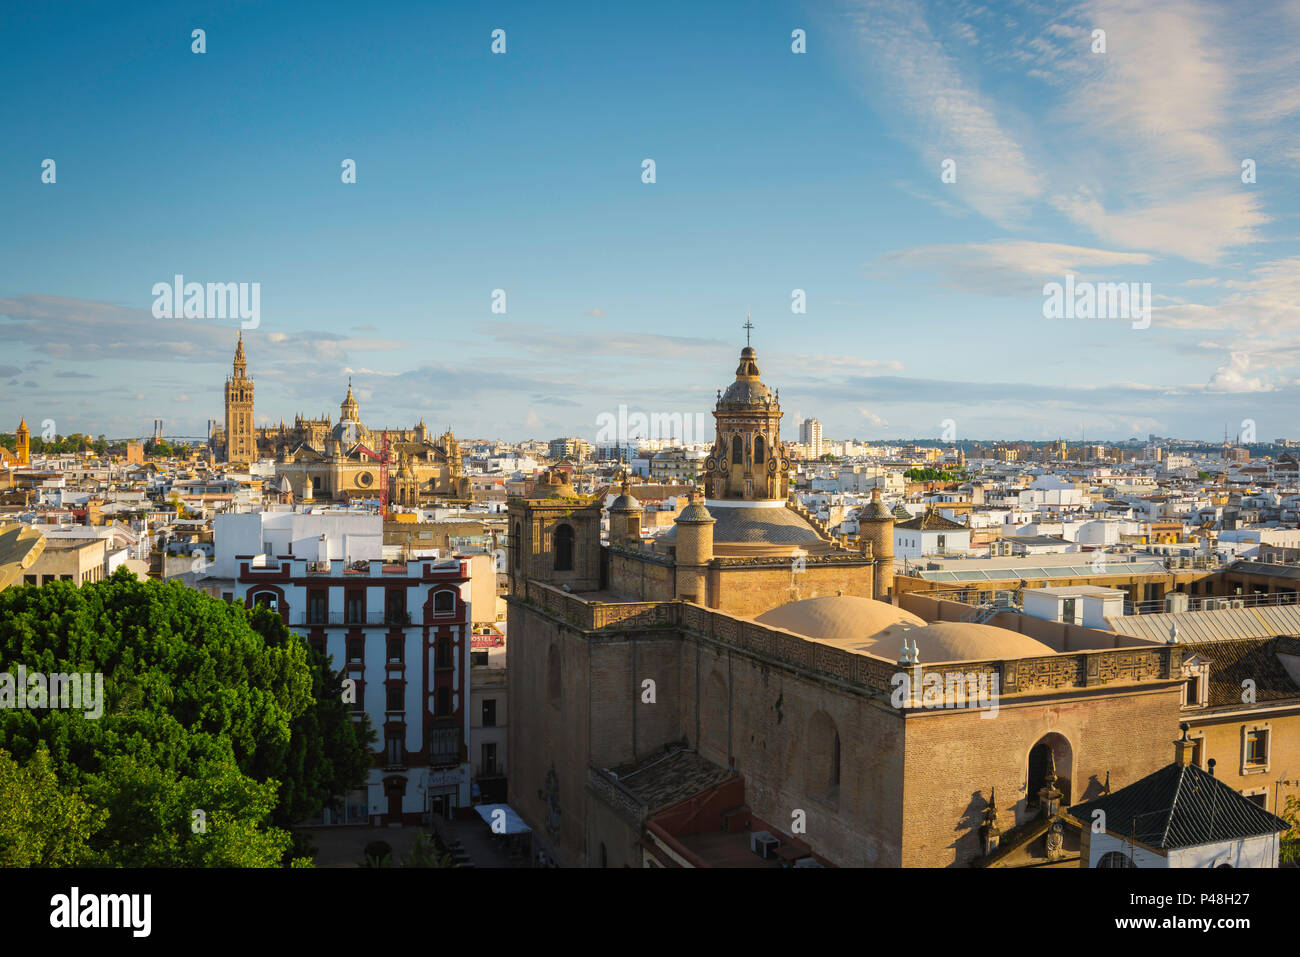 Seville Spain cityscape, view across the old city quarter of Seville at sunset towards the Cathedral and La Giralda tower, Andalucia, Spain. - Stock Image